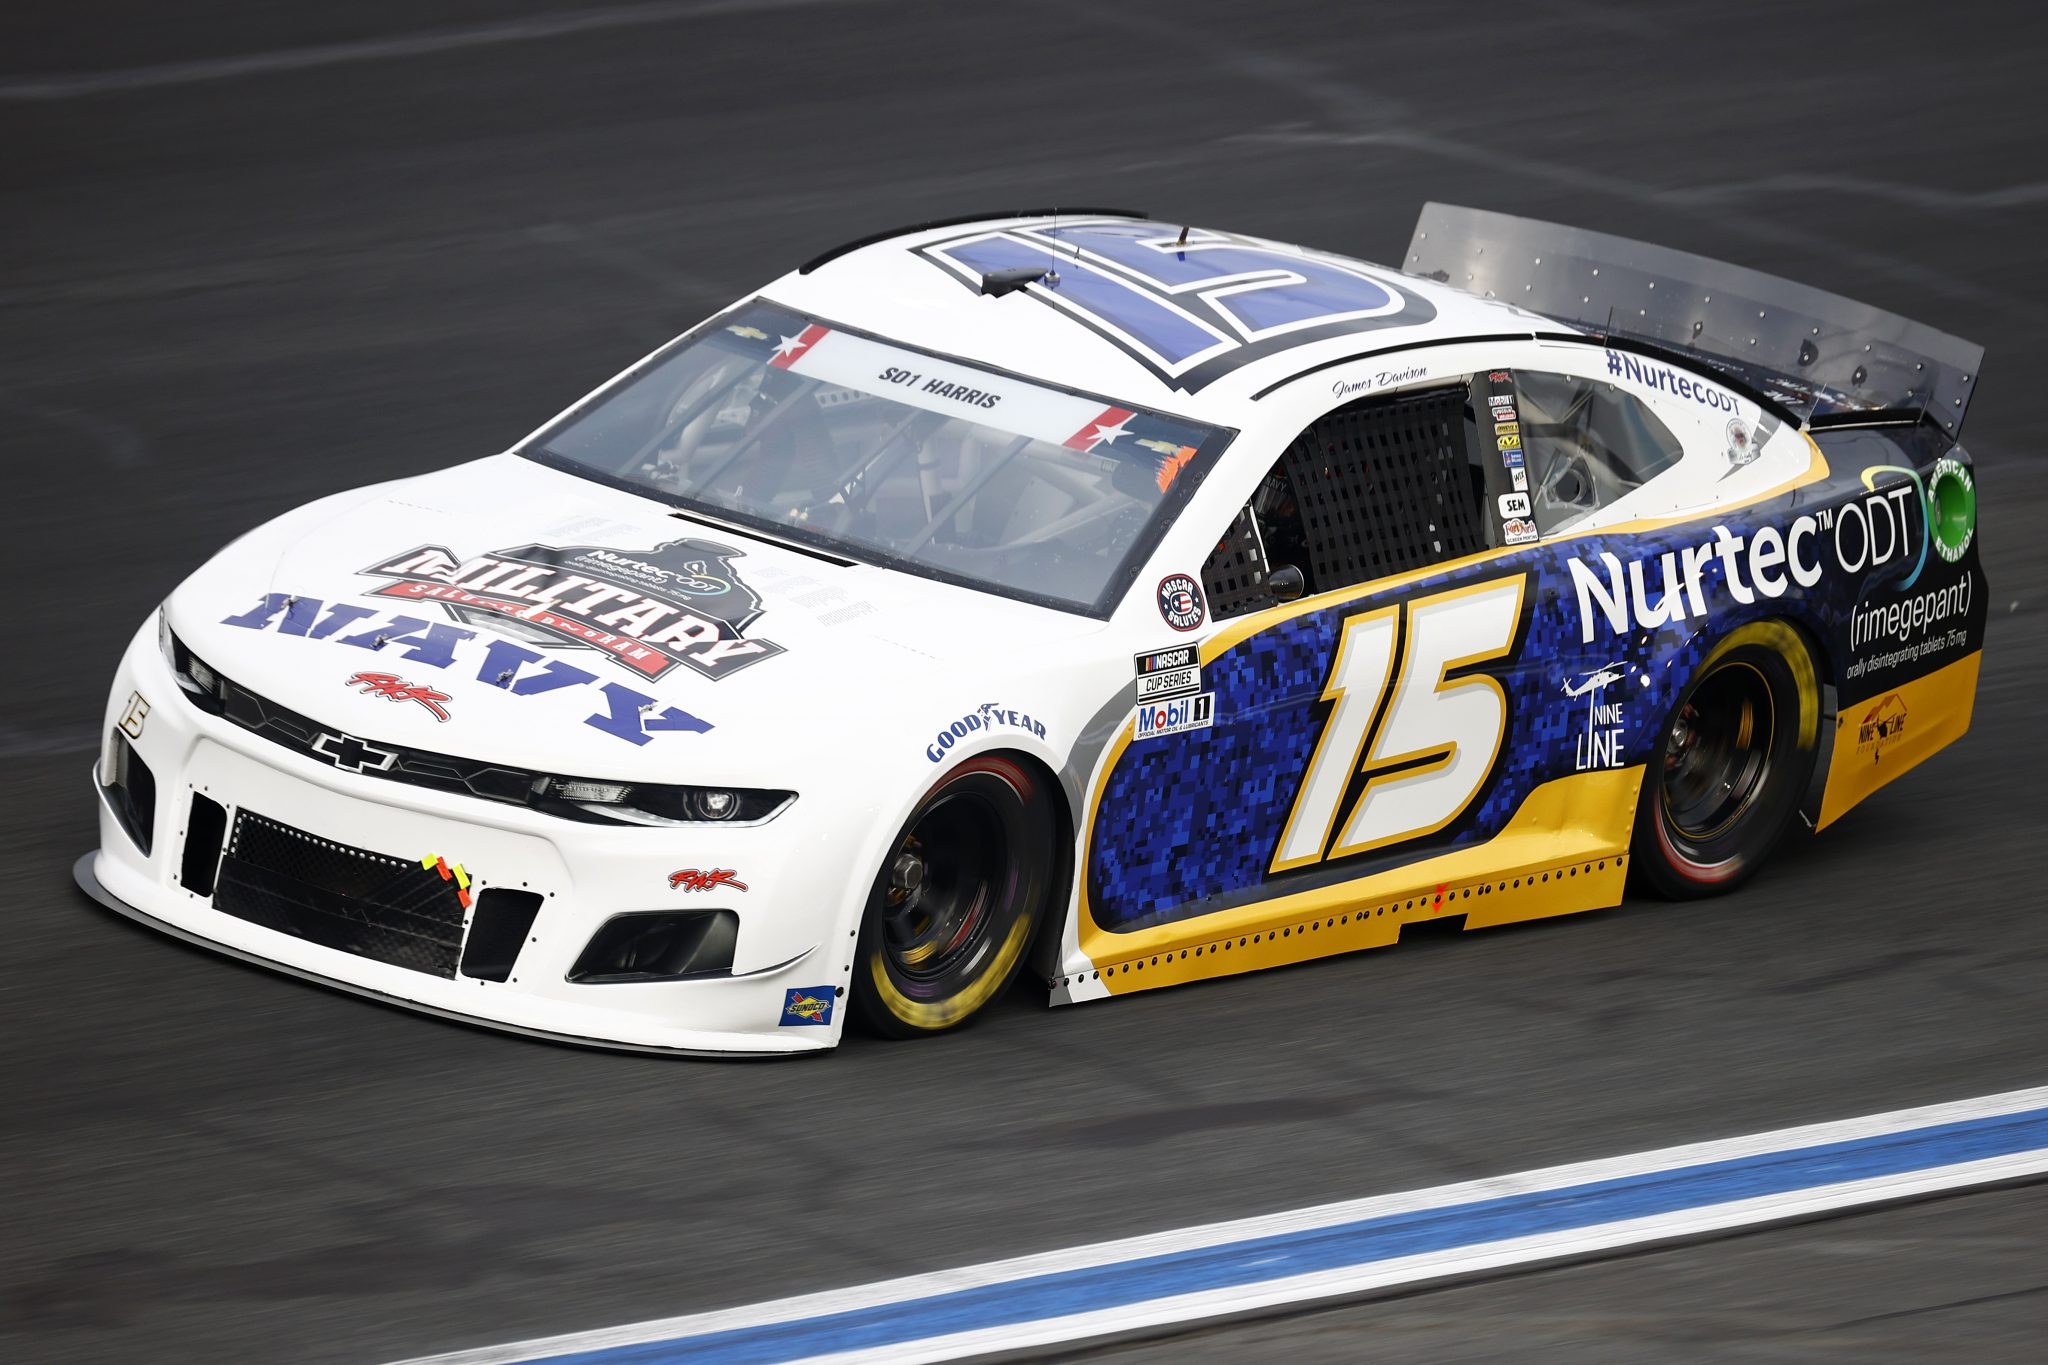 CONCORD, NORTH CAROLINA - MAY 28: James Davison, driver of the #15 NAVY Military Salutes Chevrolet, drives during practice for the NASCAR Cup Series Coca-Cola 600 at Charlotte Motor Speedway on May 28, 2021 in Concord, North Carolina. (Photo by Jared C. Tilton/Getty Images) | Getty Images